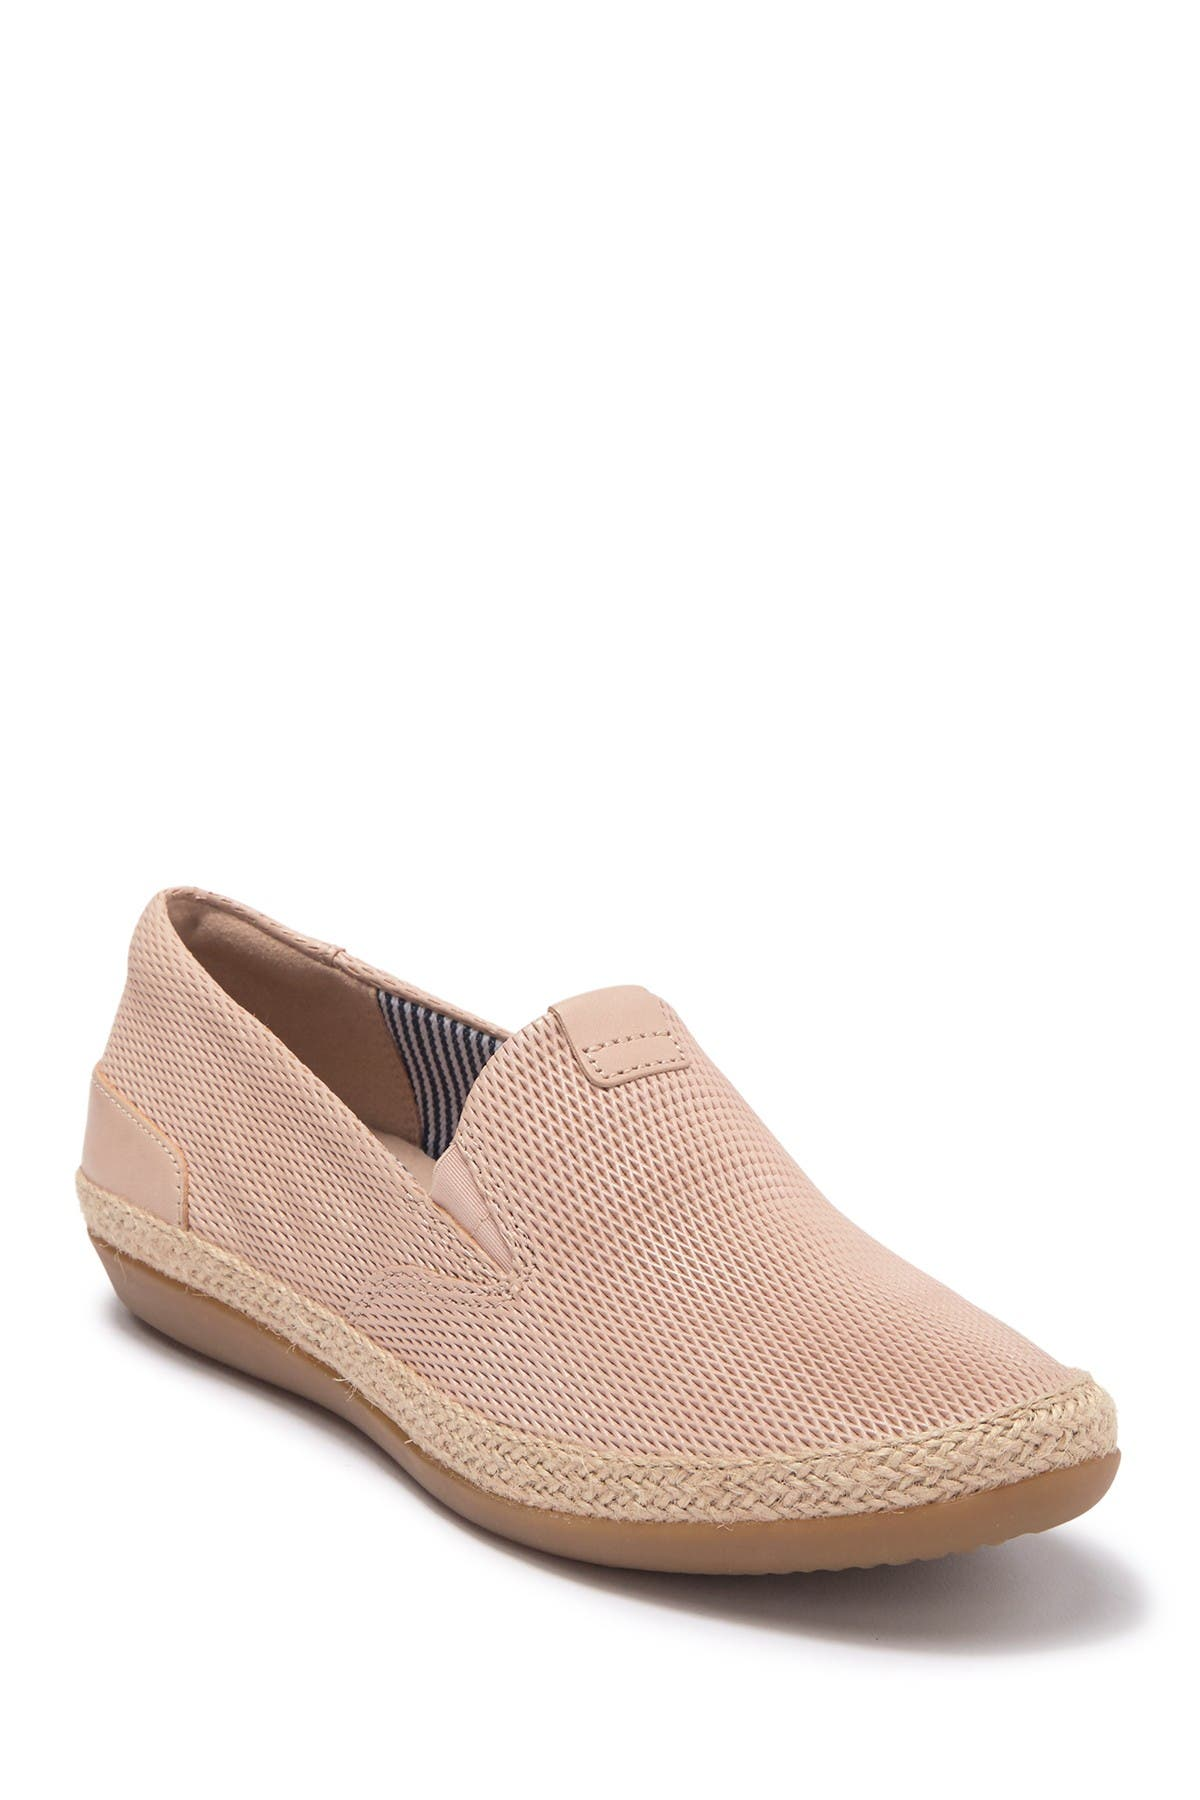 Danelly Iris Perforated Suede Slip-On